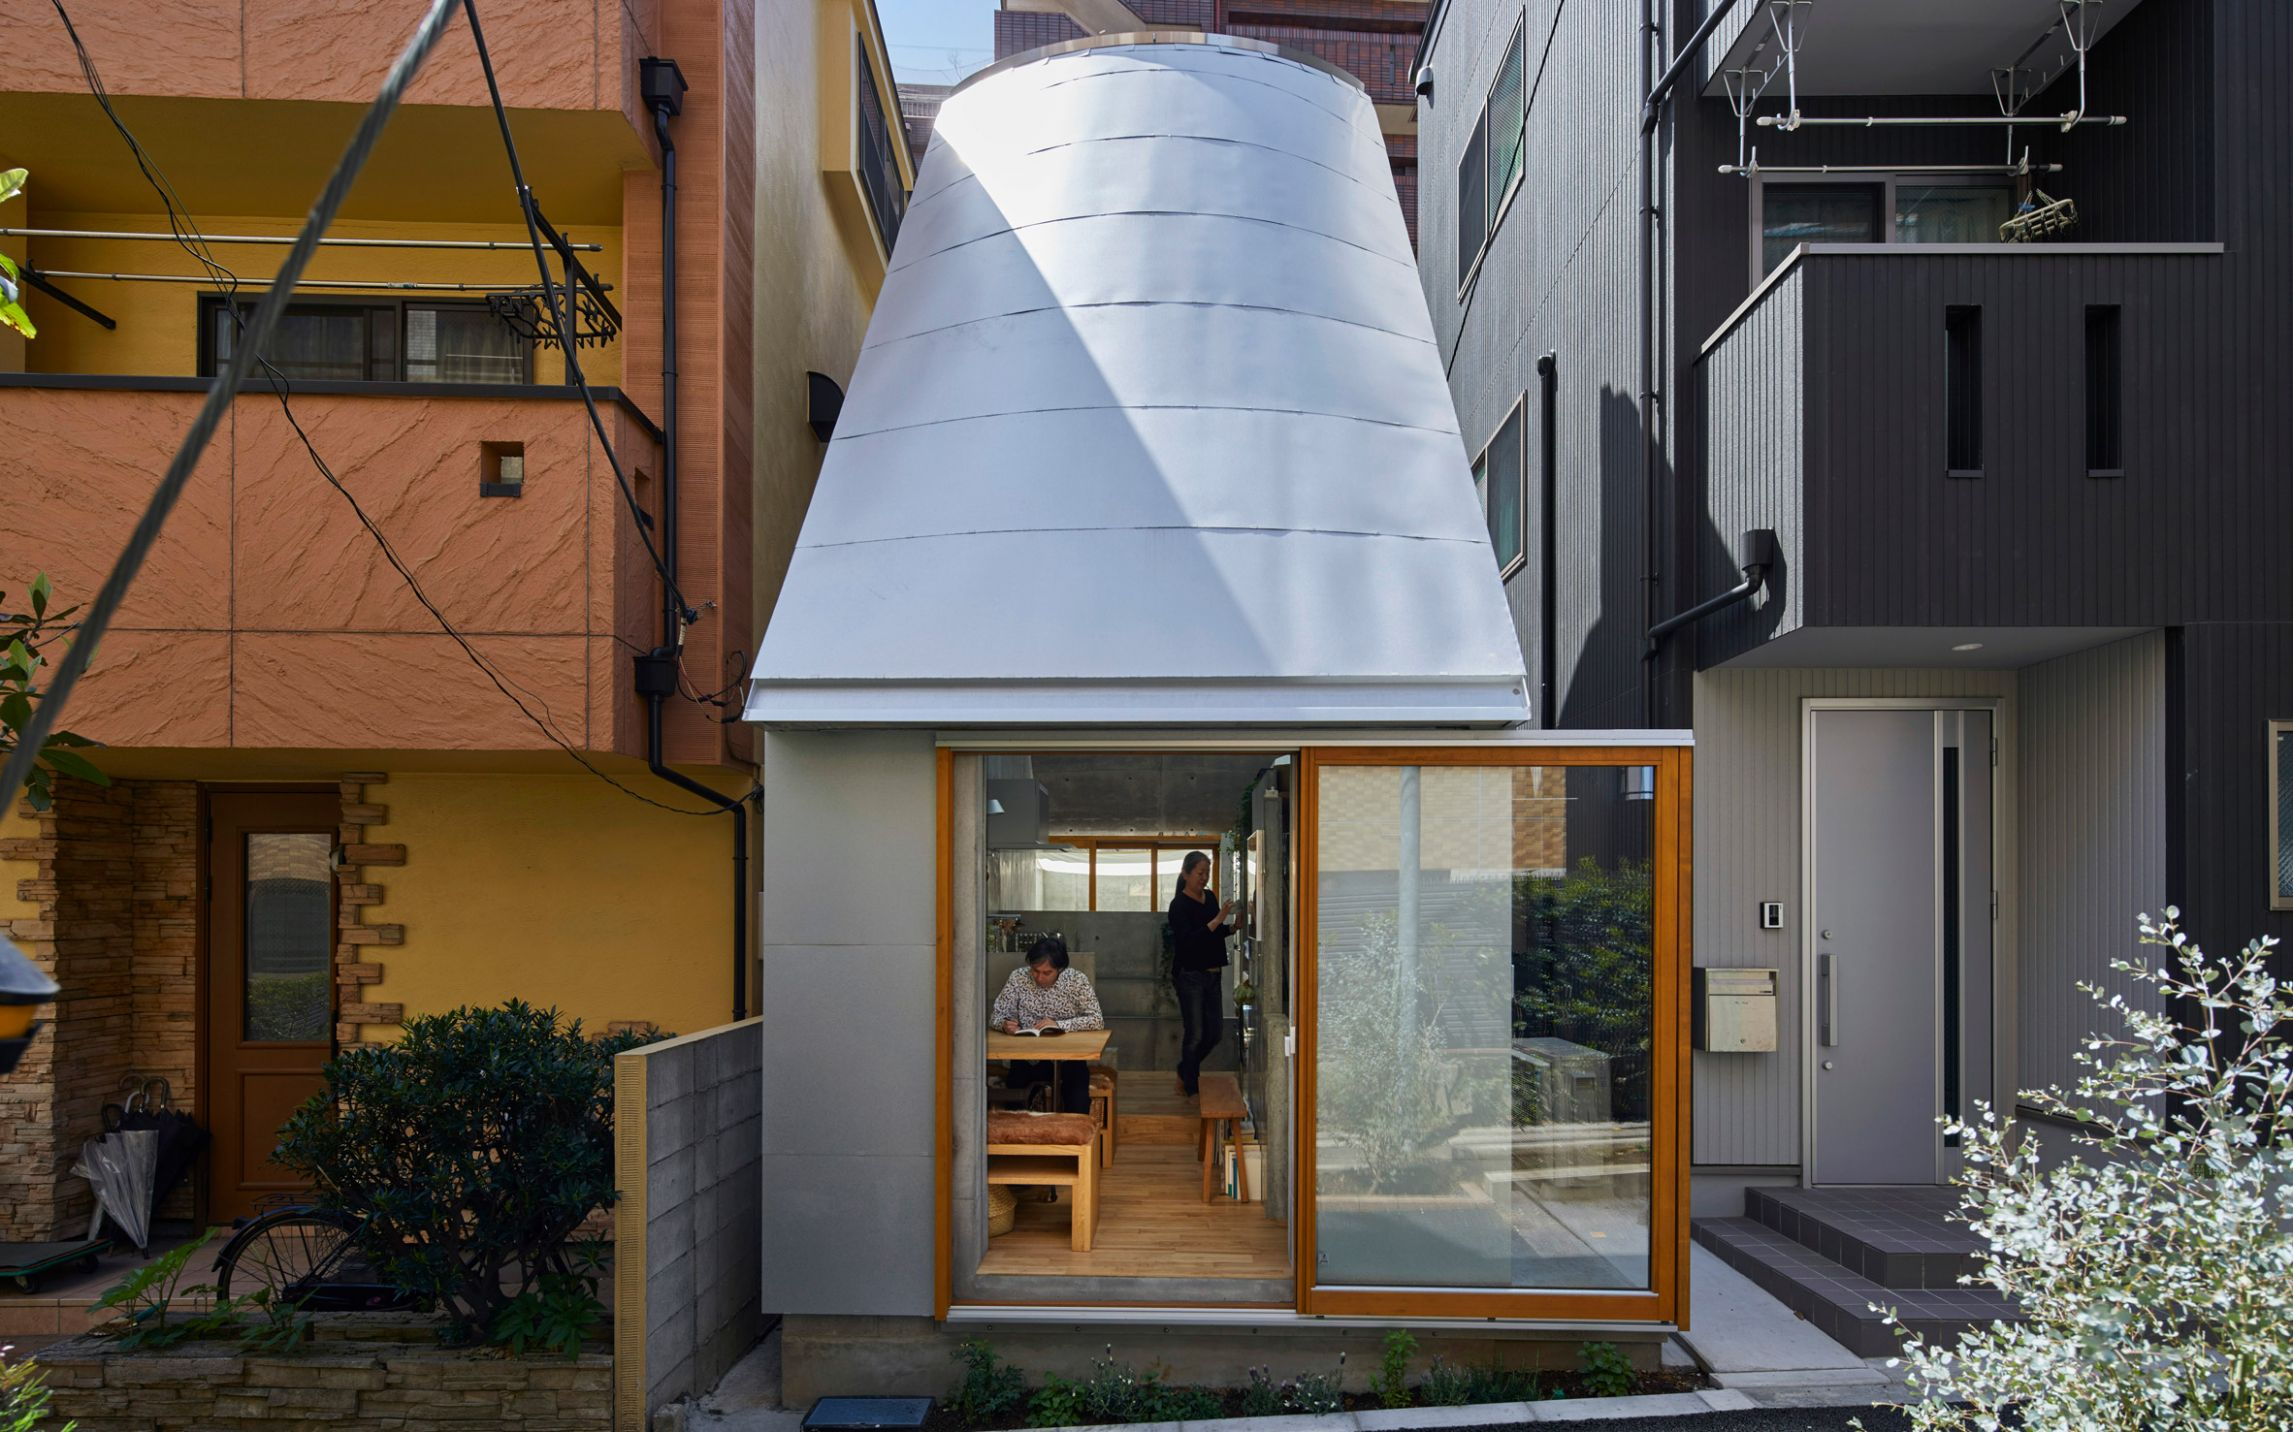 Takeshi Hosaka designs tiny house in Tokyo with funnel-like roofs - tiny house indonesia